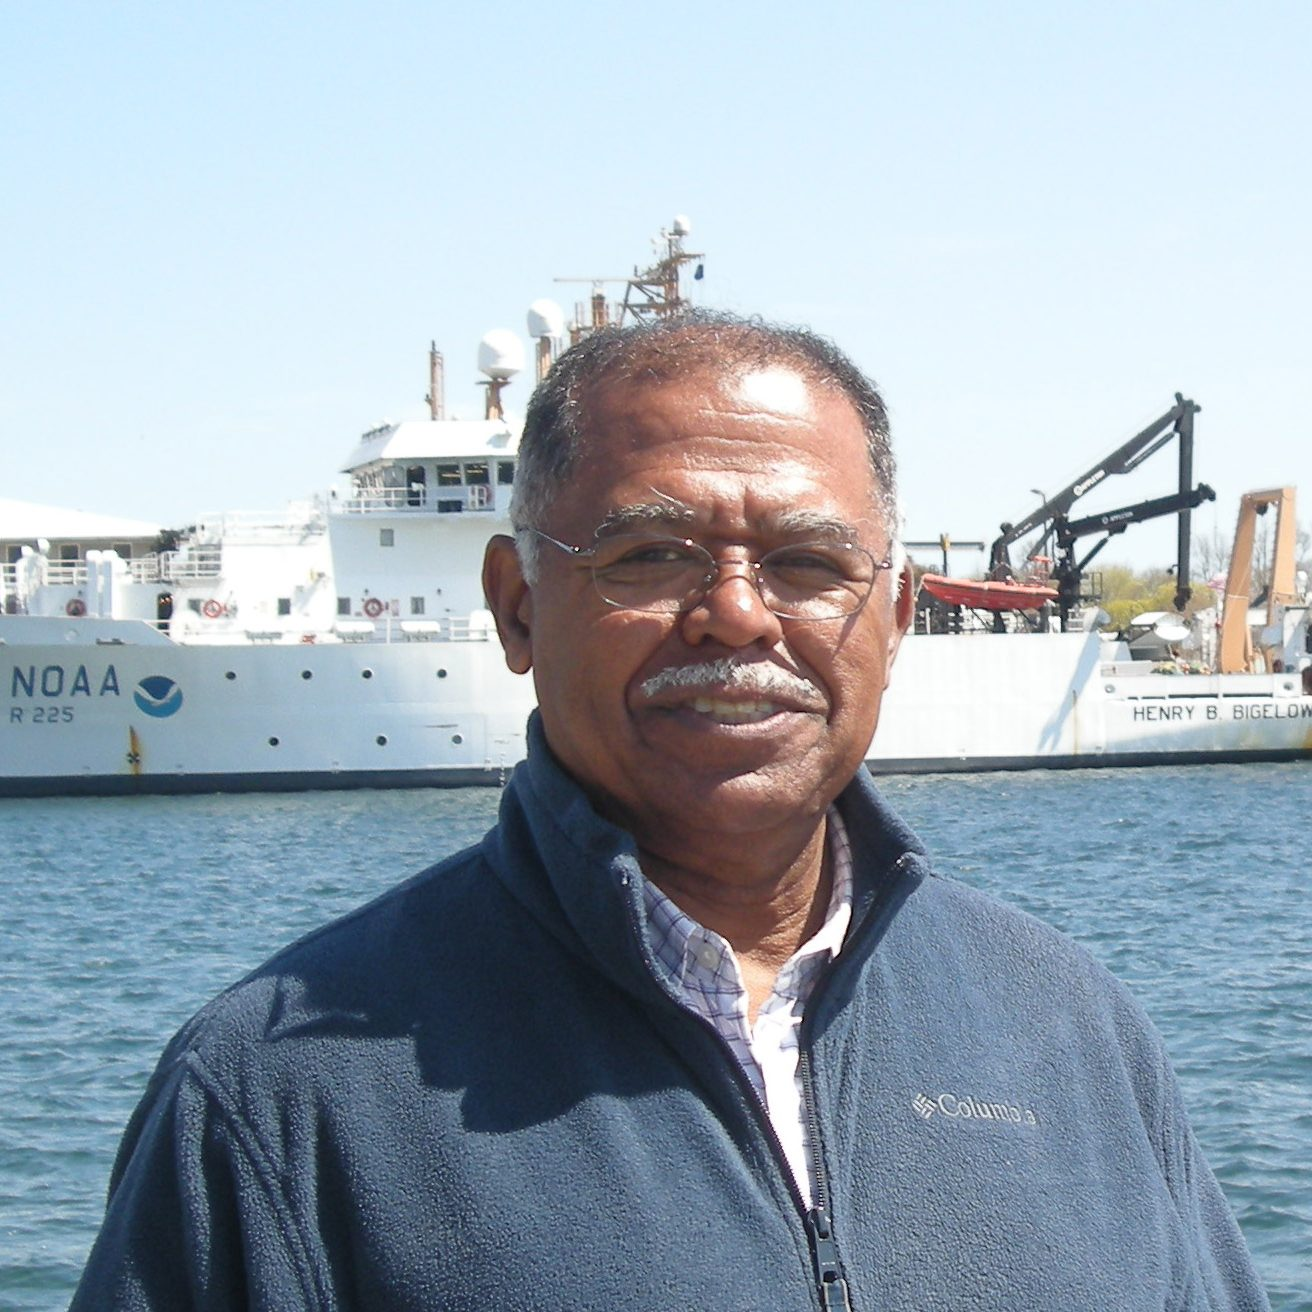 Ambrose Jearld Jr., with the NOAA Ship Henry B. Bigelow in the background. Photo credit: NOAA Fisheries/Shelley Dawicki, NEFSC